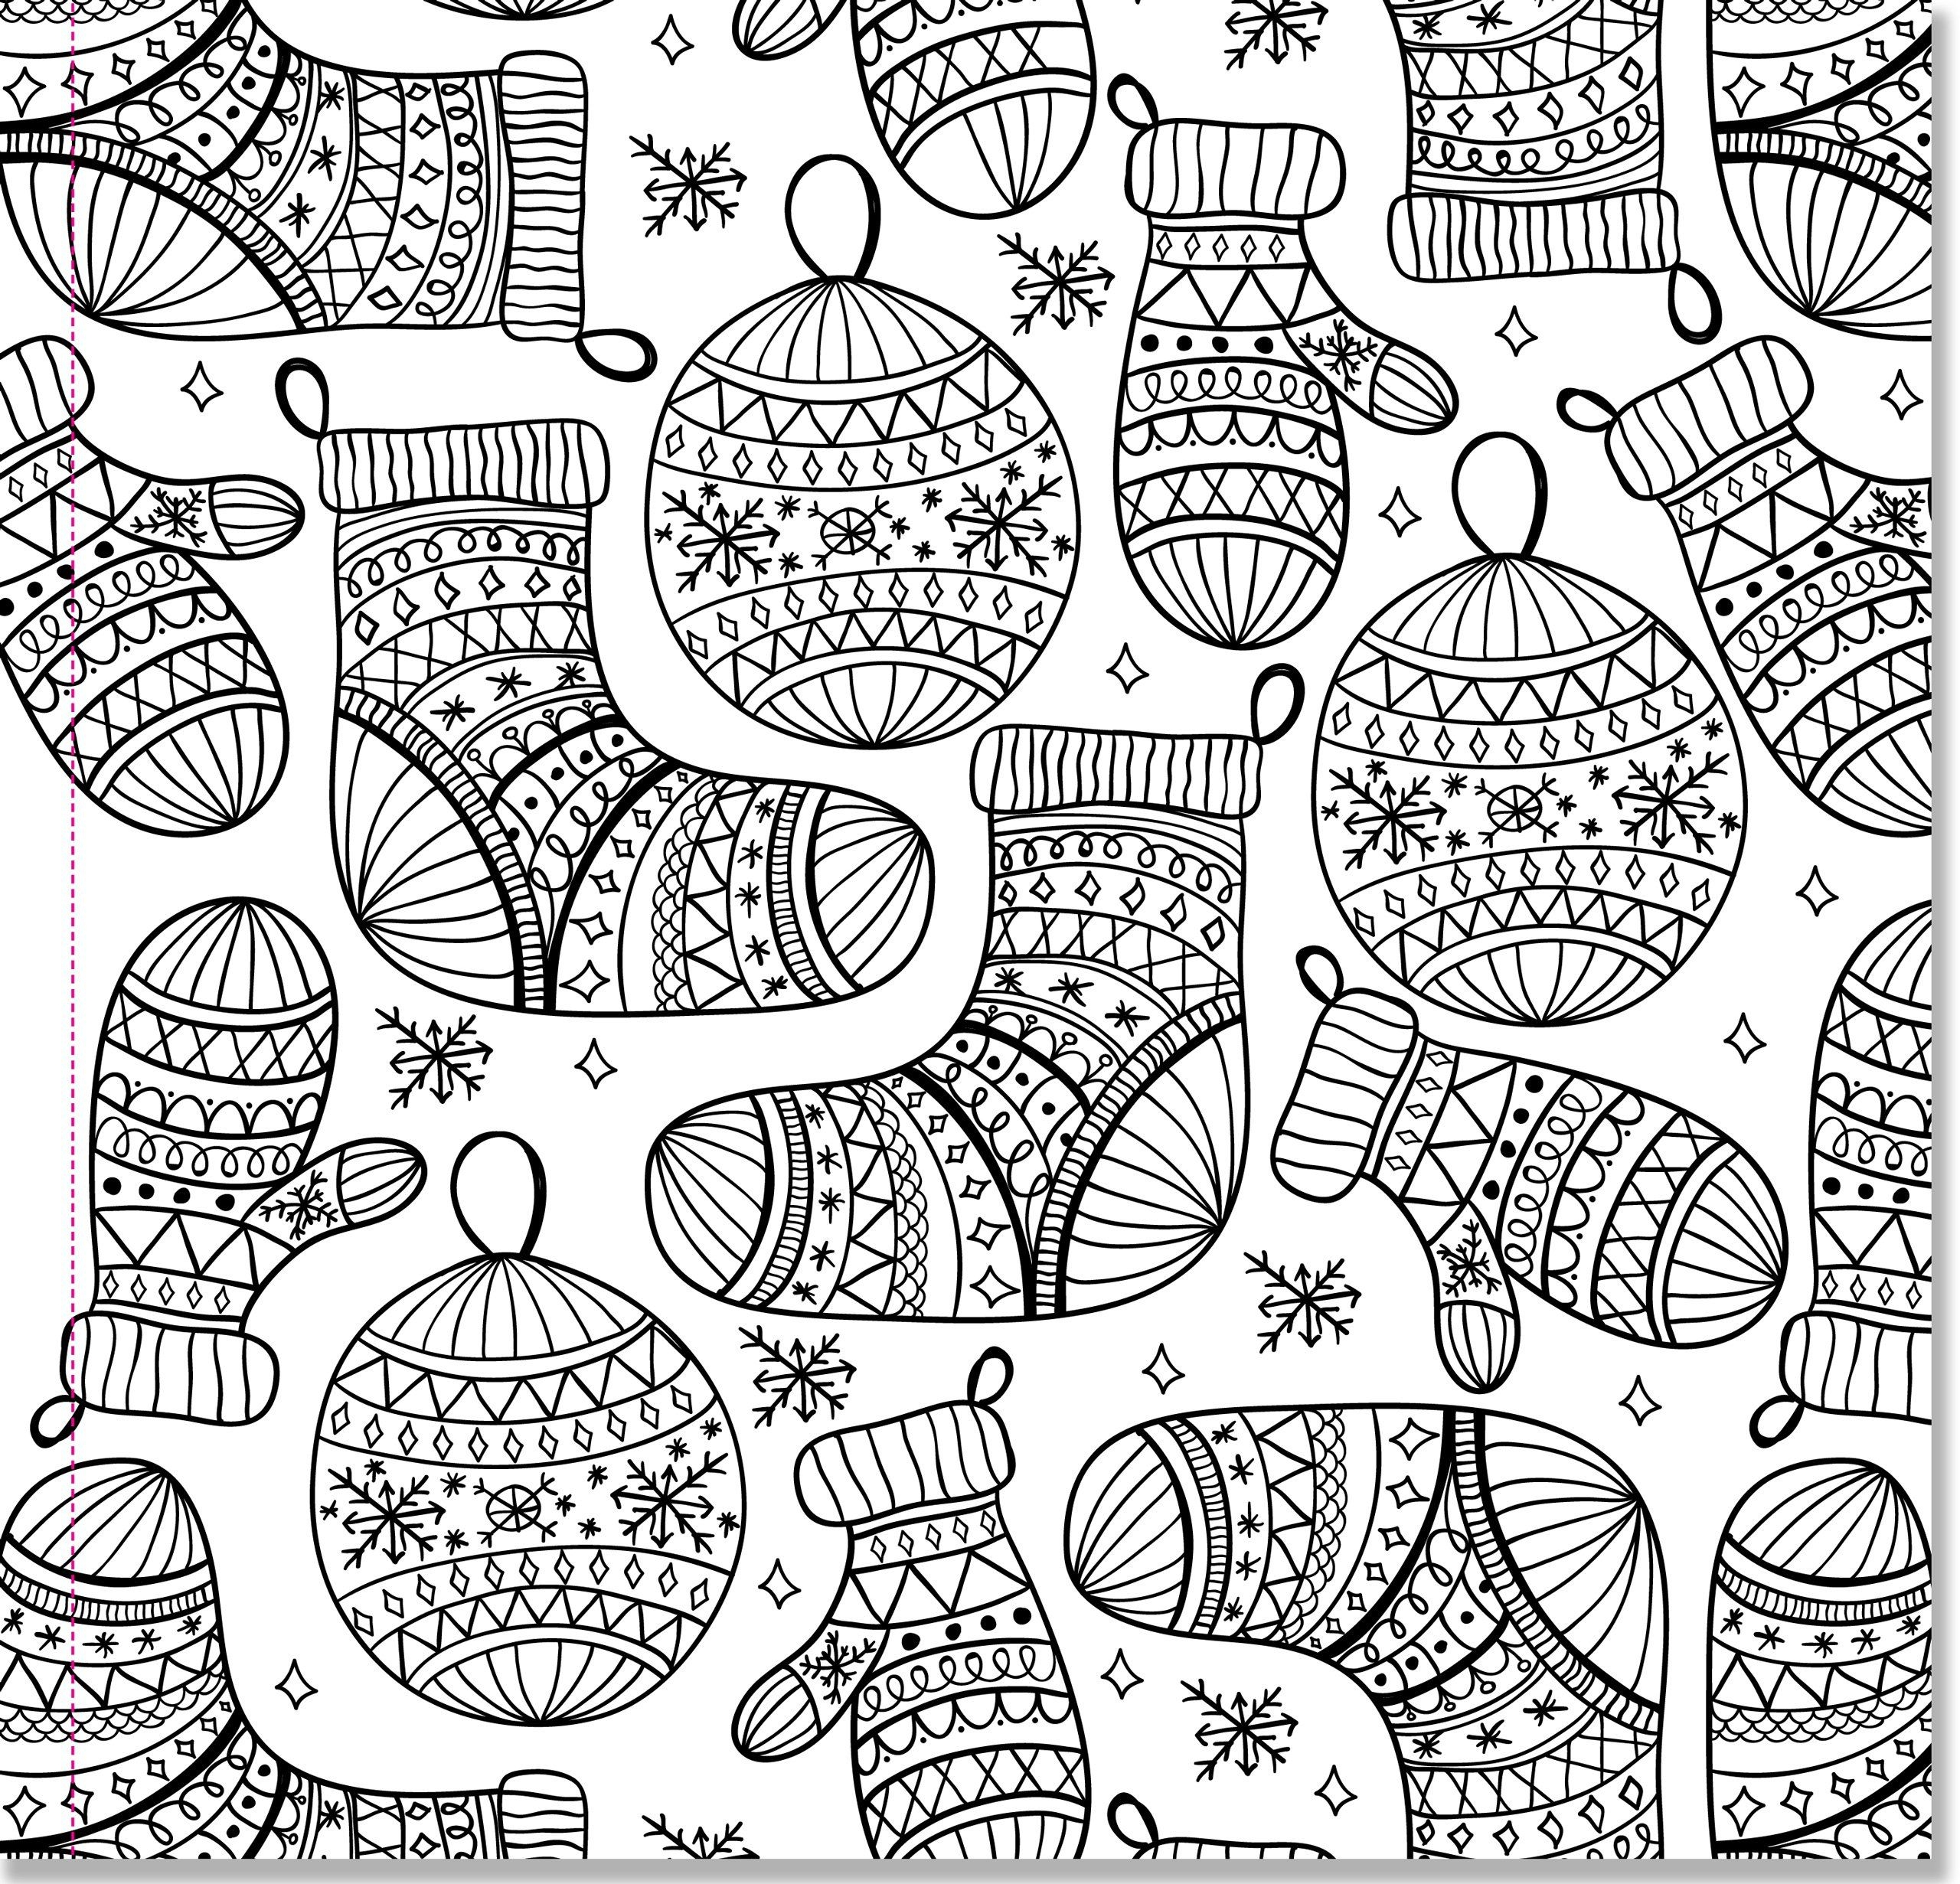 Xmas Coloring Book Pages With Christmas For Adults Printable To Print Free